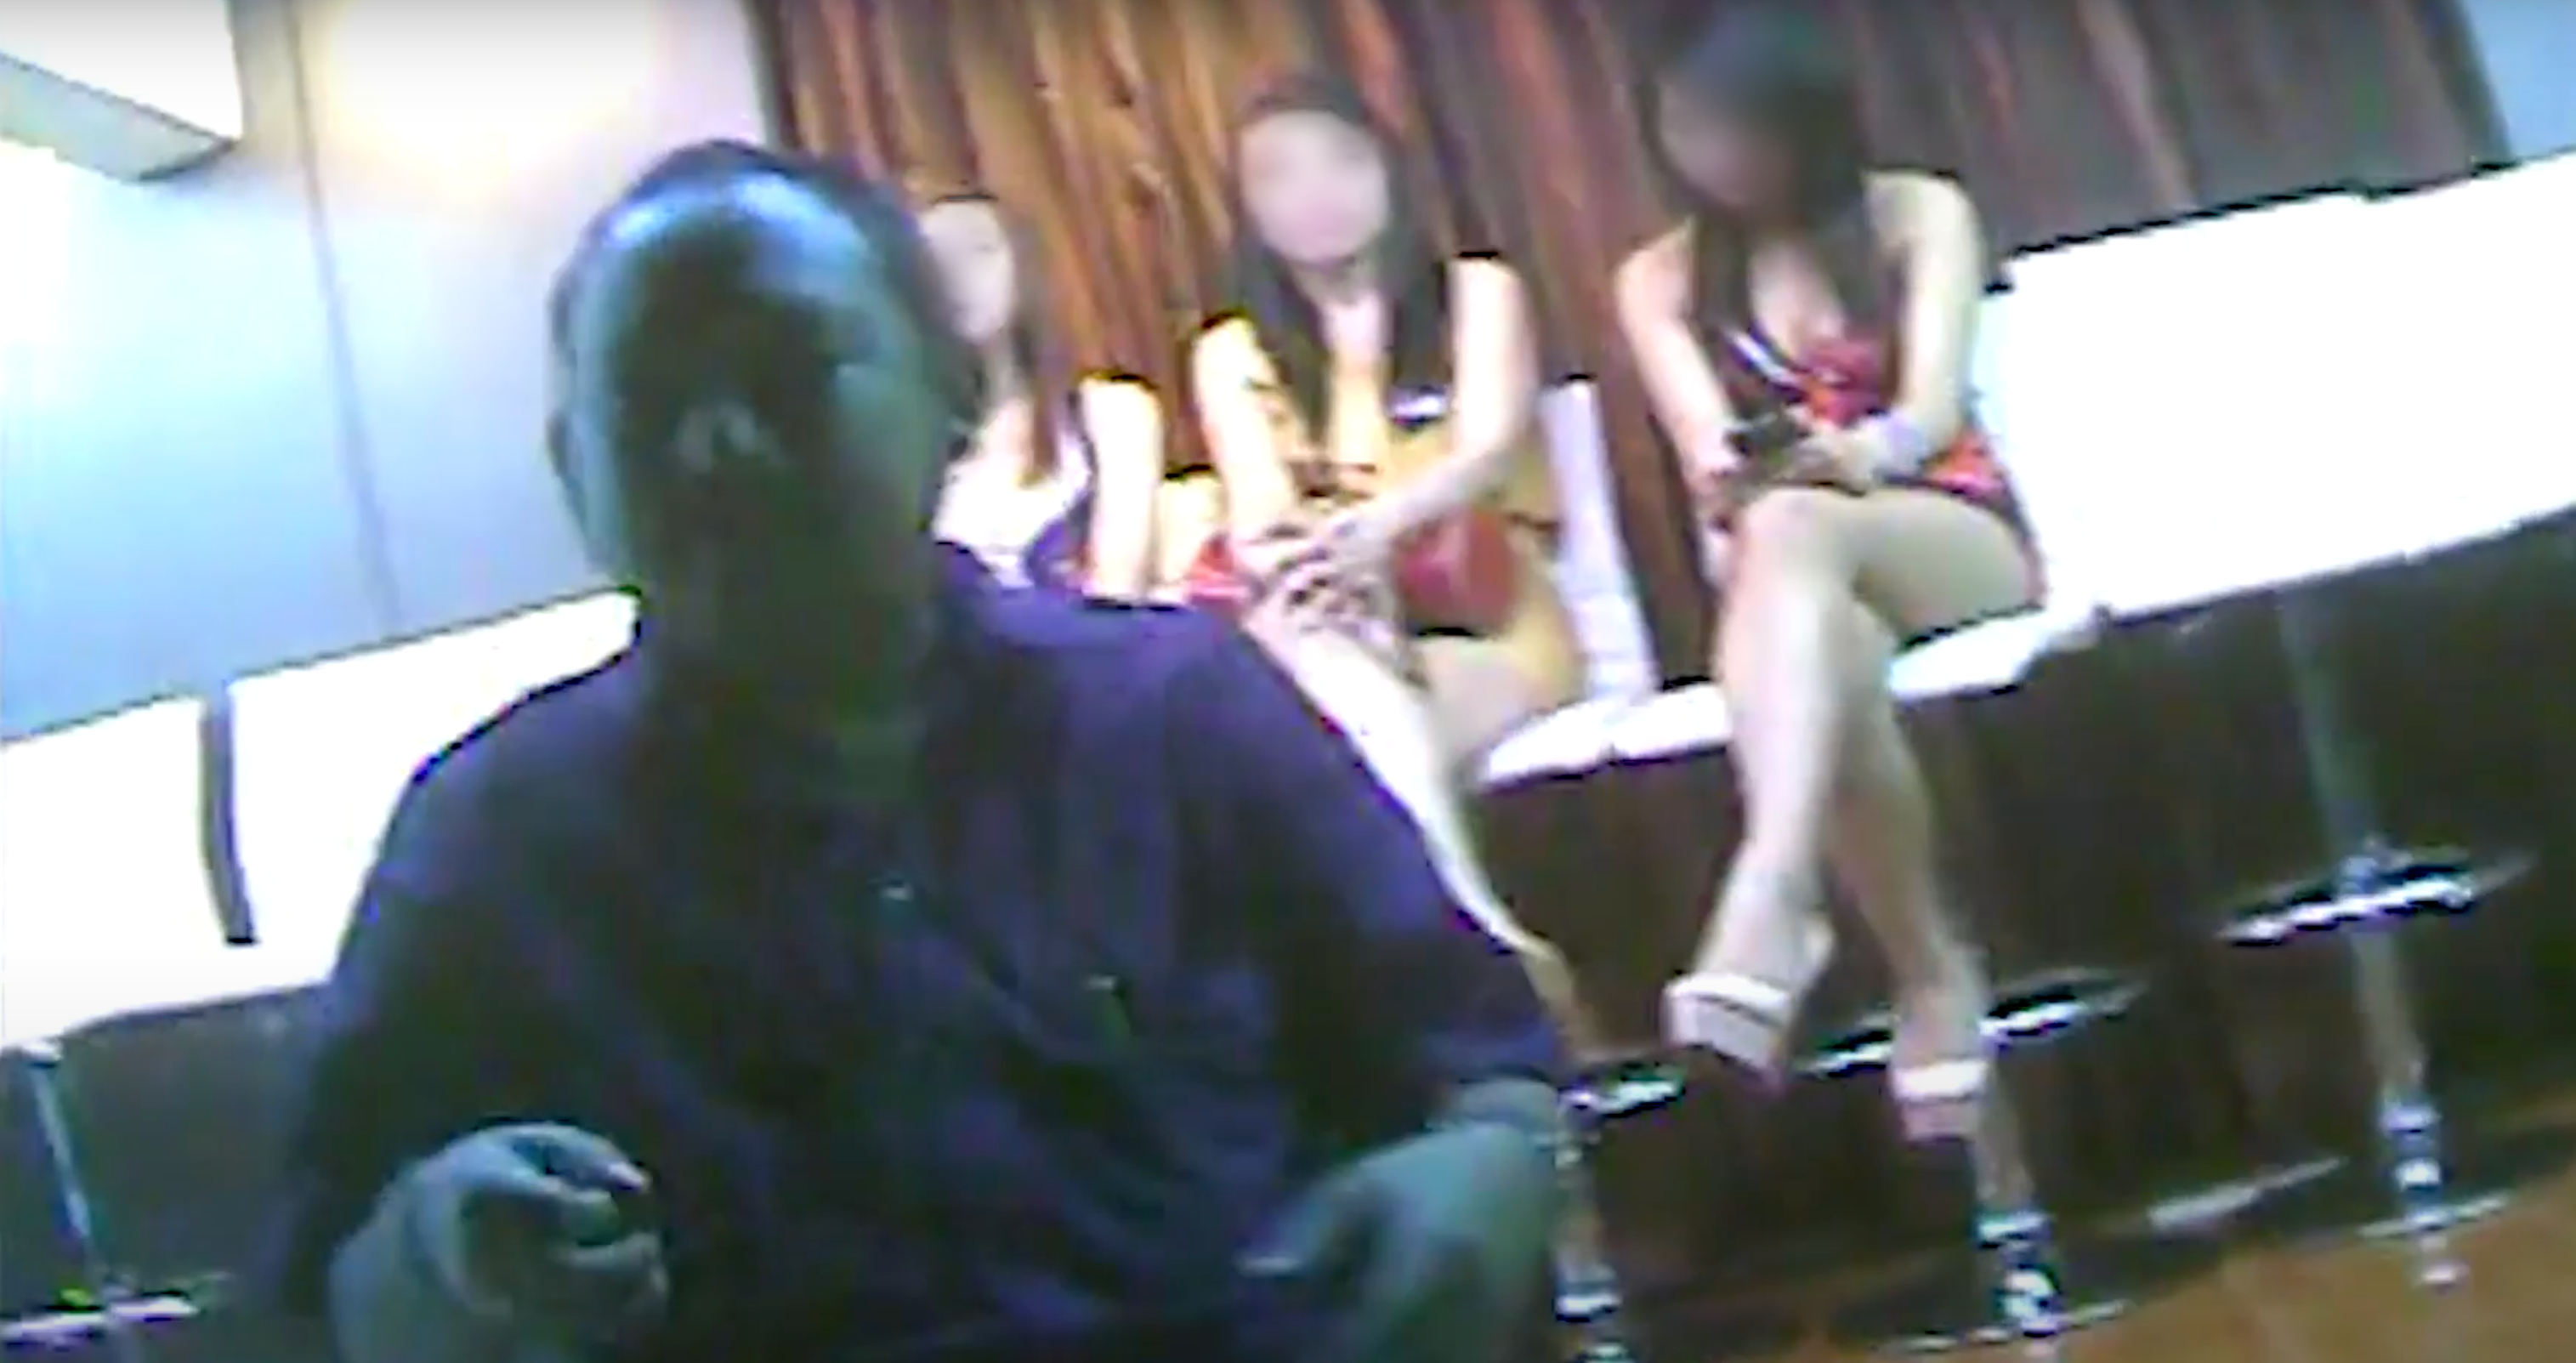 Three female victims of human trafficking sit, legs crossed, behind a male trafficker.